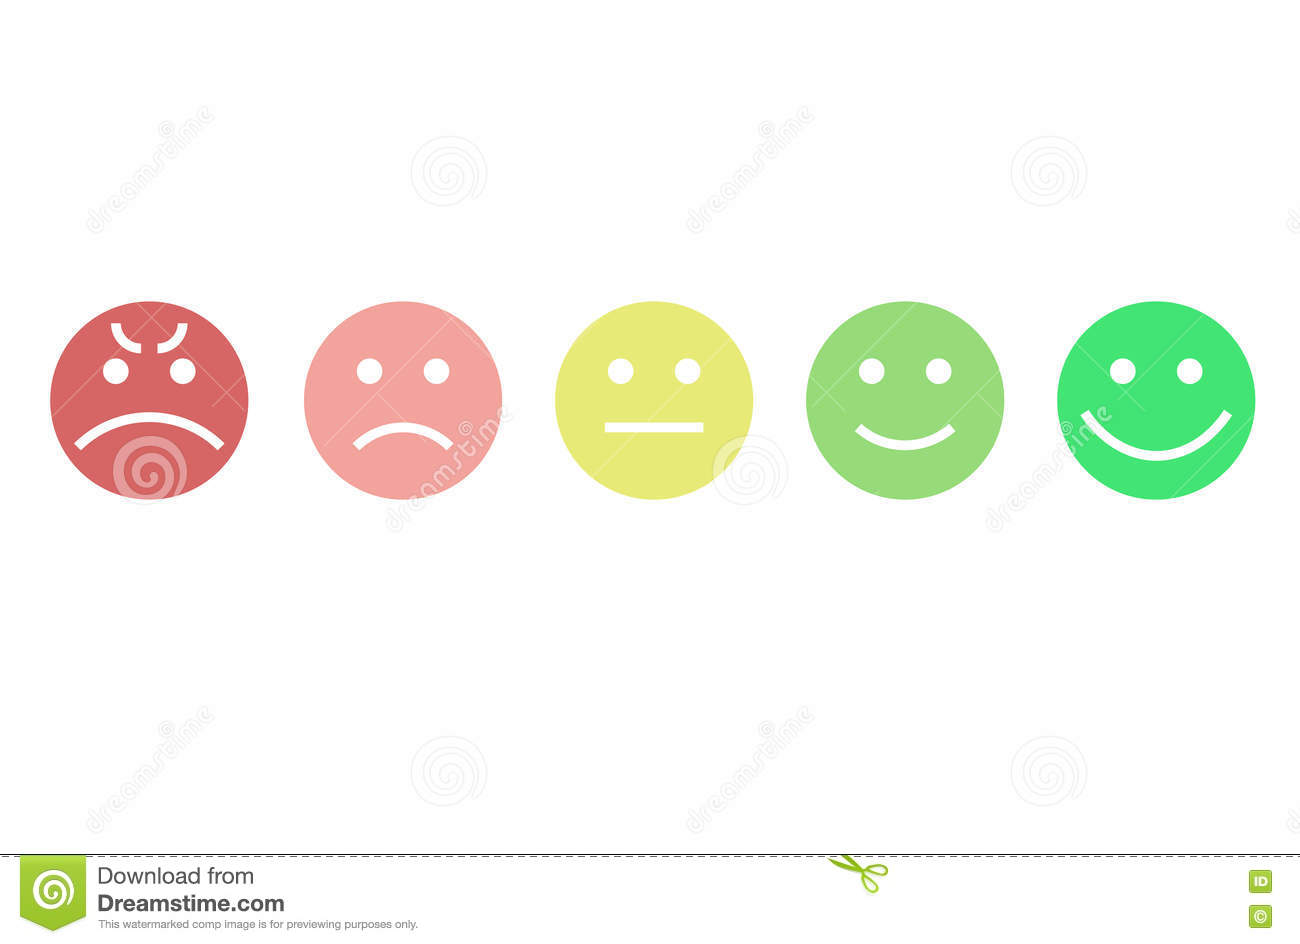 Customer Feedback Or User Experience Concept Stock Vector Image Customer Feedback User Experience Concept Rank Level Satisfaction Rating Form Emotions  Stock Illustration Customer Feedback User Experience Concept Rank Level Satisfaction Rating Form Emotions Image